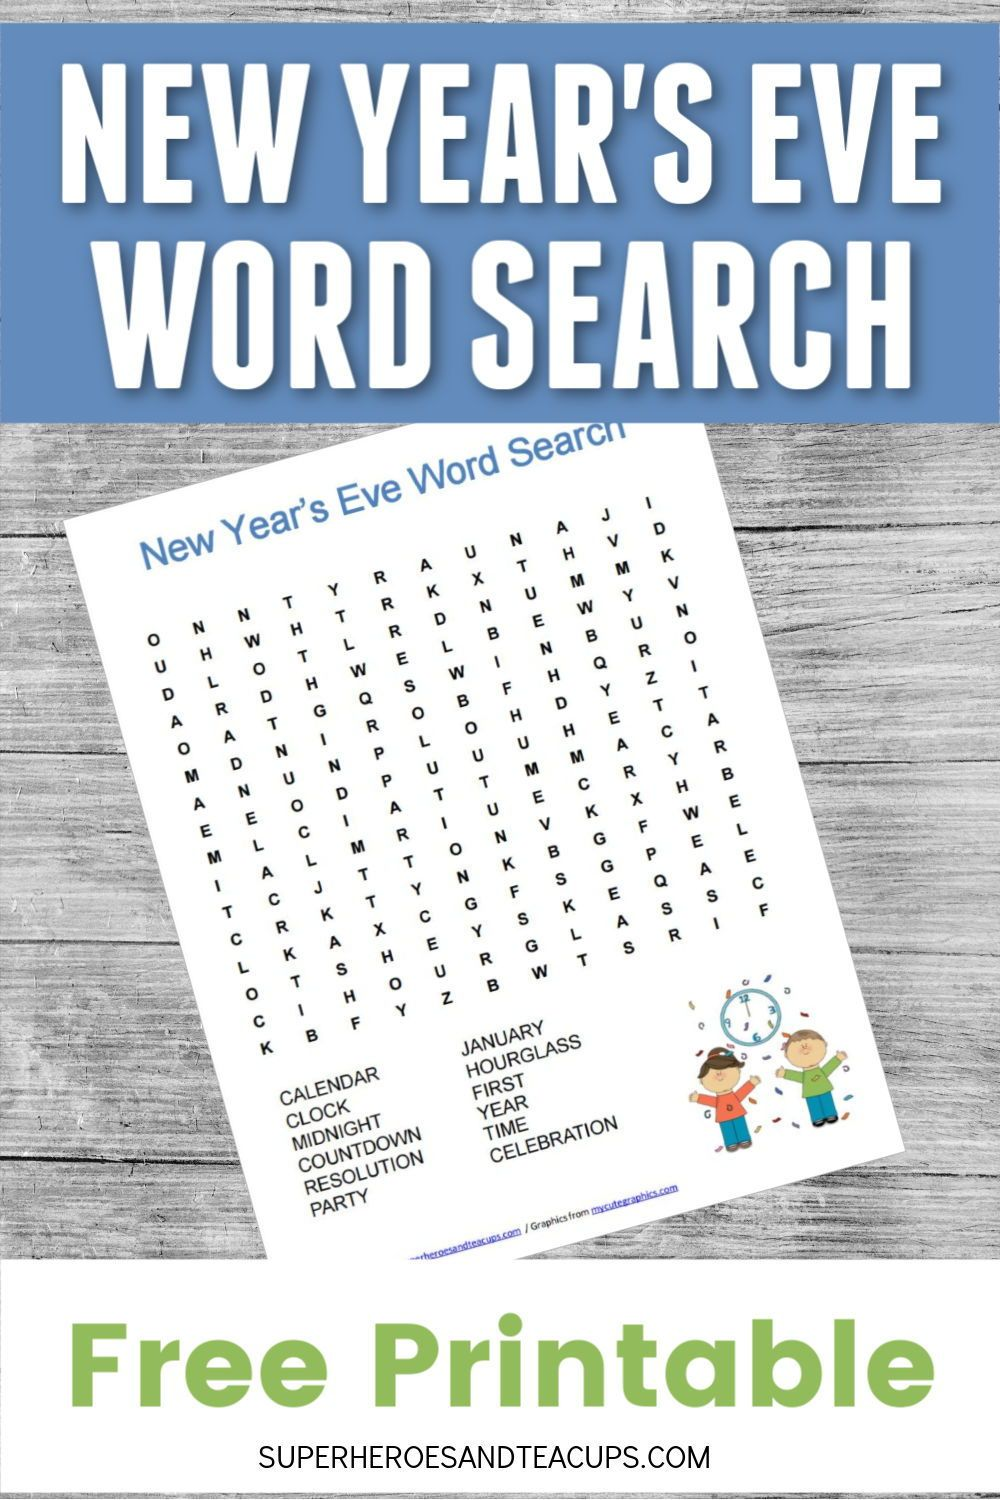 New Year's Eve Word Search Free Printable New year's eve